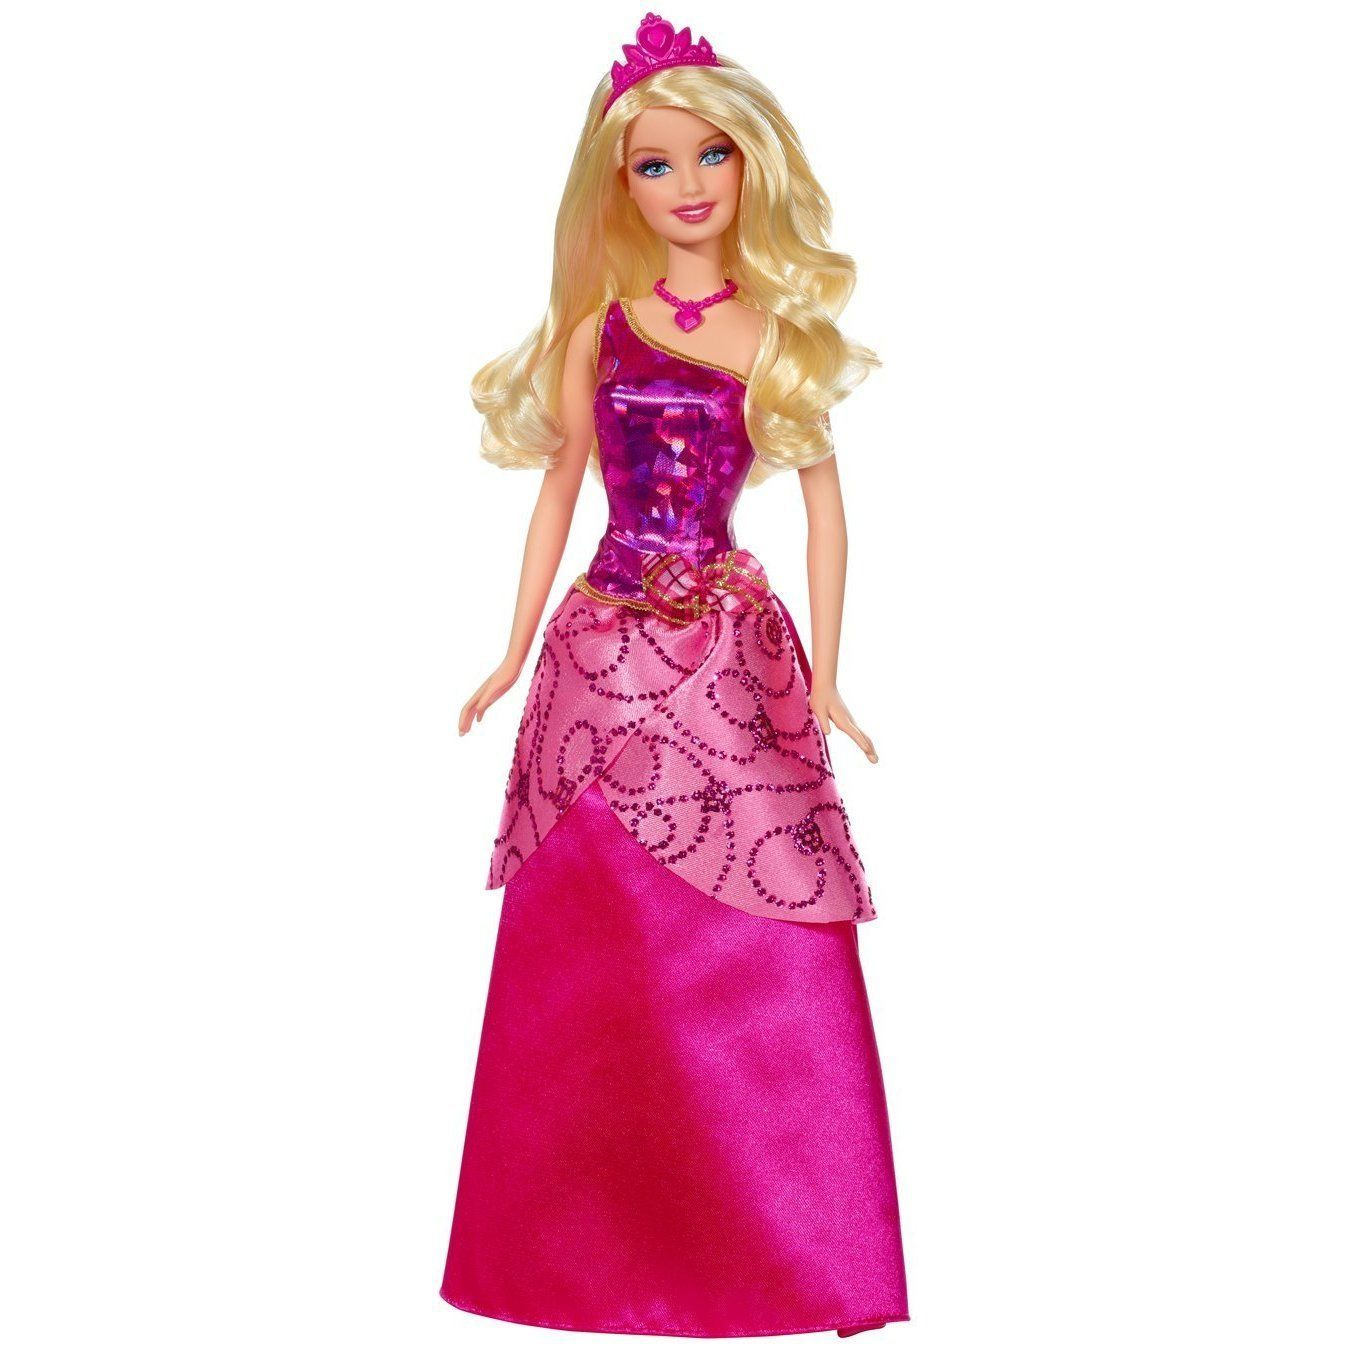 barbie dolls | HD Barbie Doll Without Makeup Girl Games Wallpaper Coloring Pages .